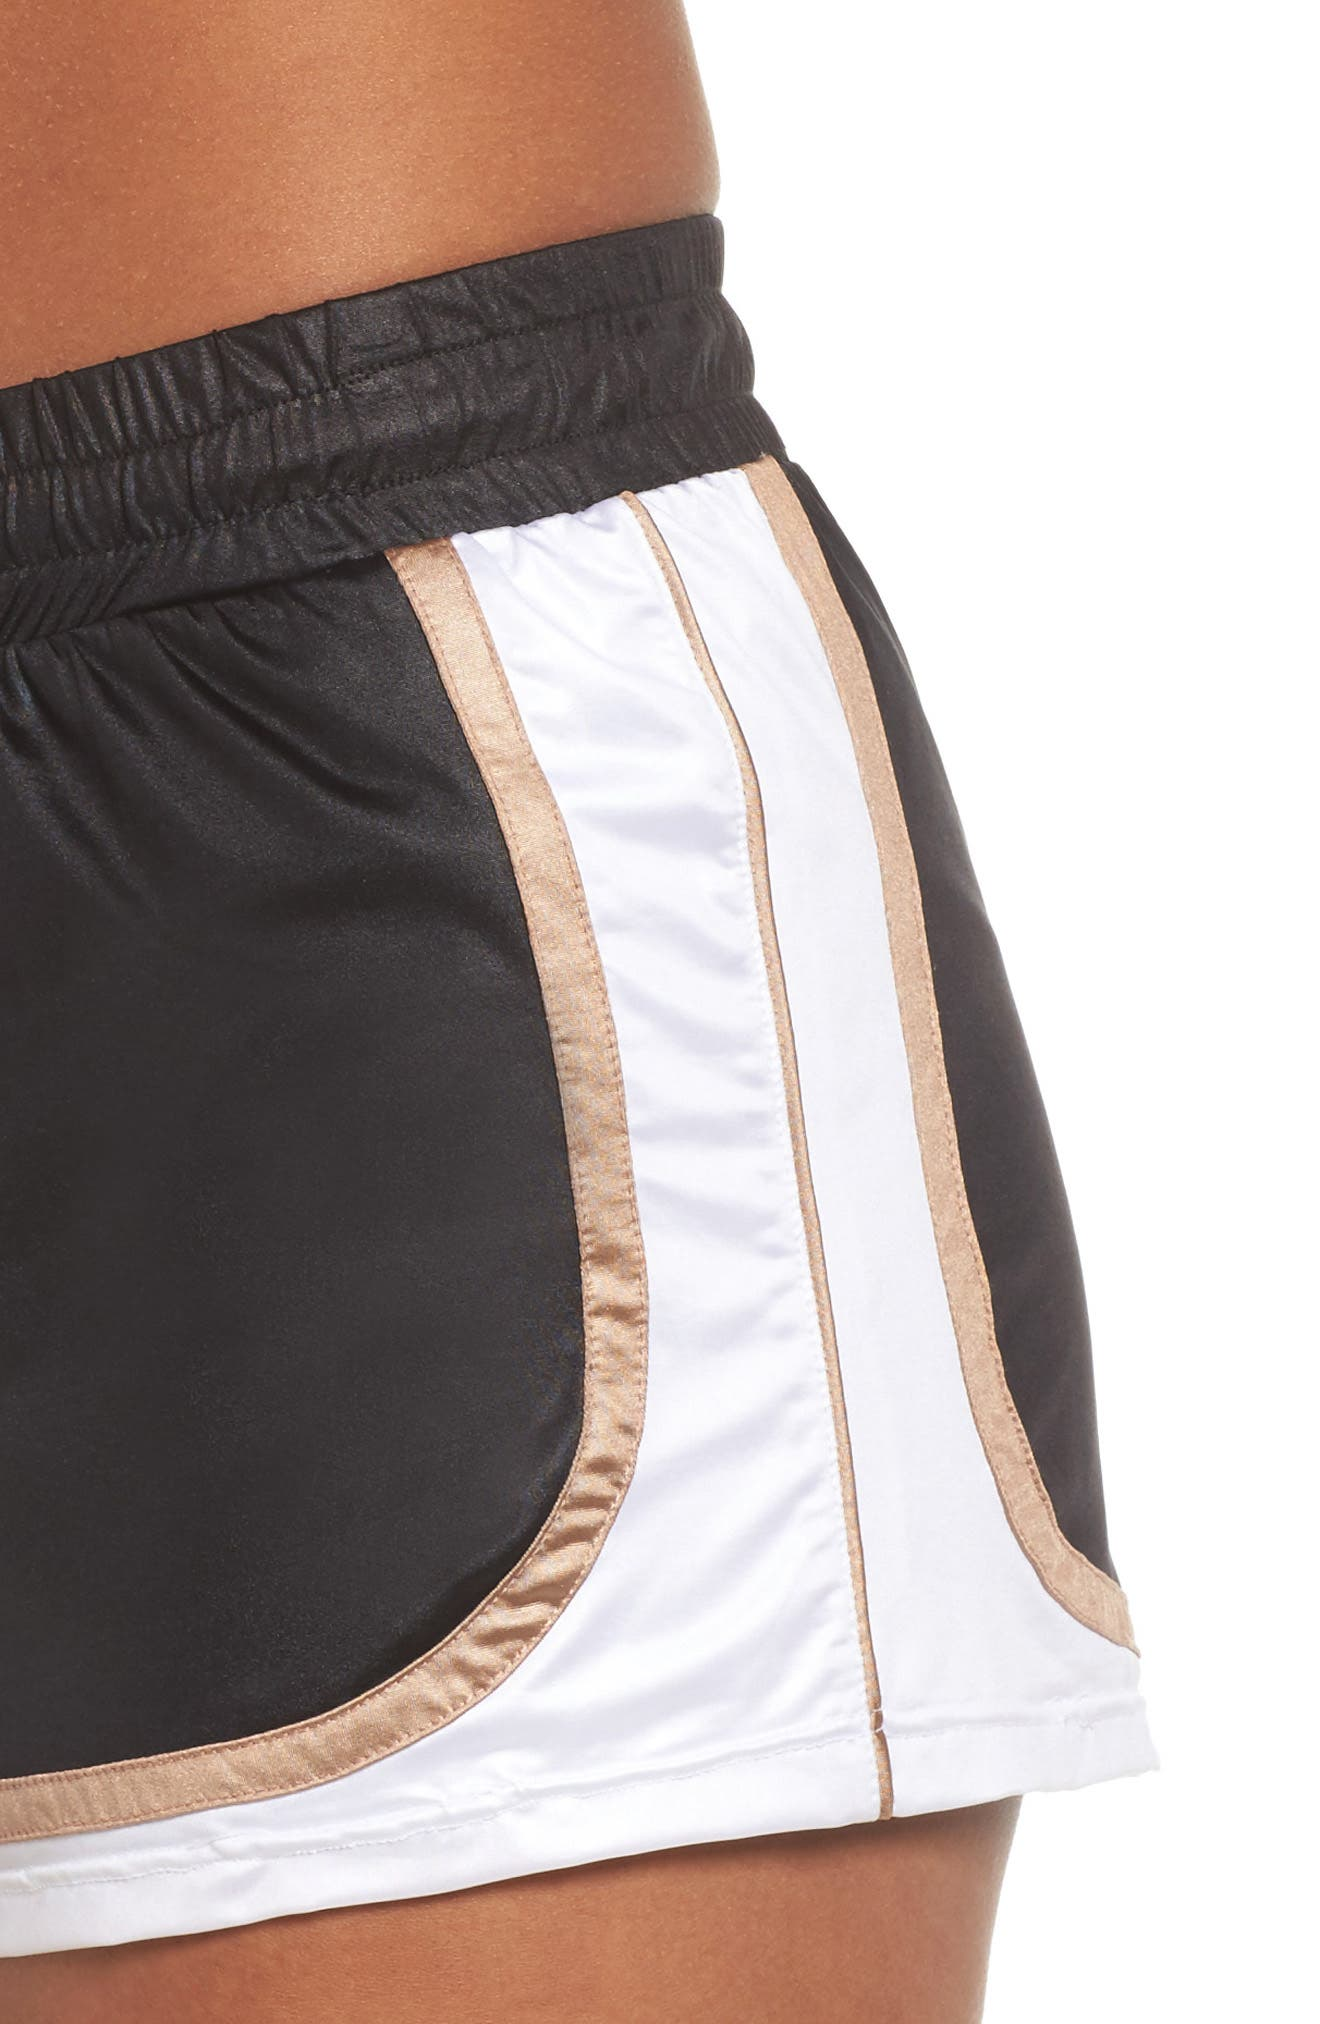 Blackout Shorts,                             Alternate thumbnail 4, color,                             BLACK/ NUDE/ WHITE